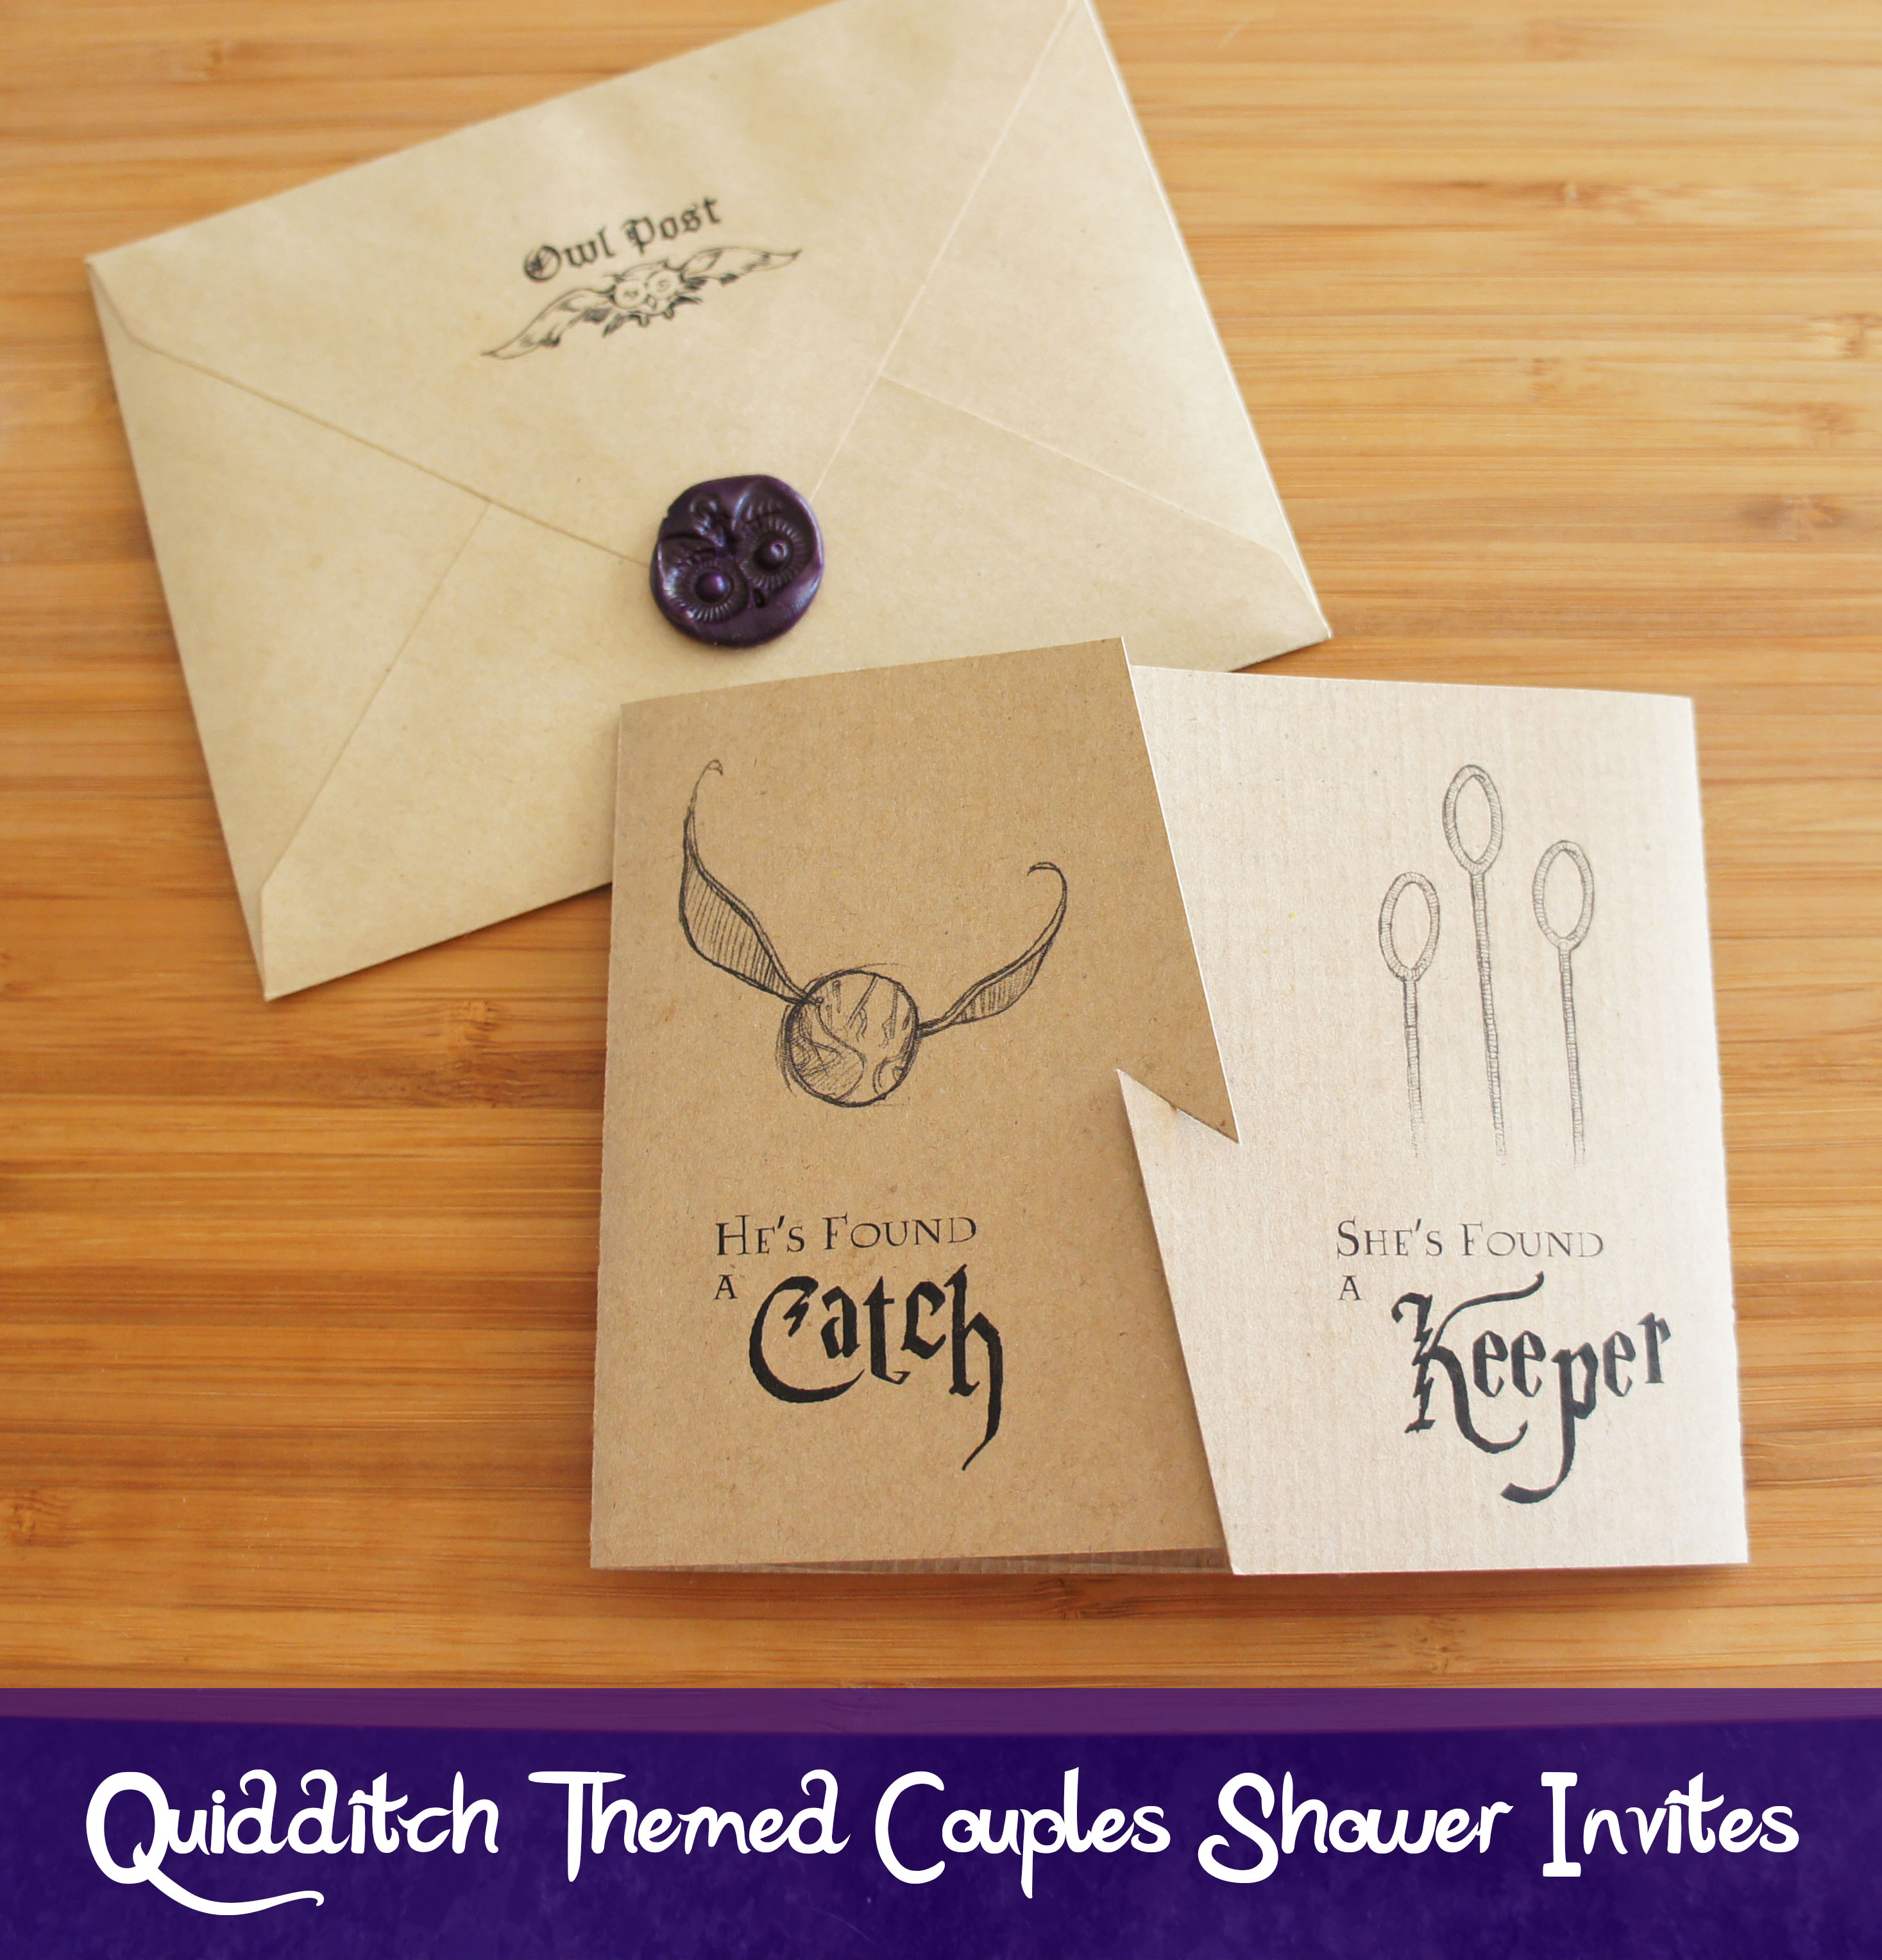 Quidditch inspired invites for a harry potter themed couples shower confession i have never read harry potter i vaguely remember watching the first movie but that was way back when it first came out and i couldnt solutioingenieria Gallery